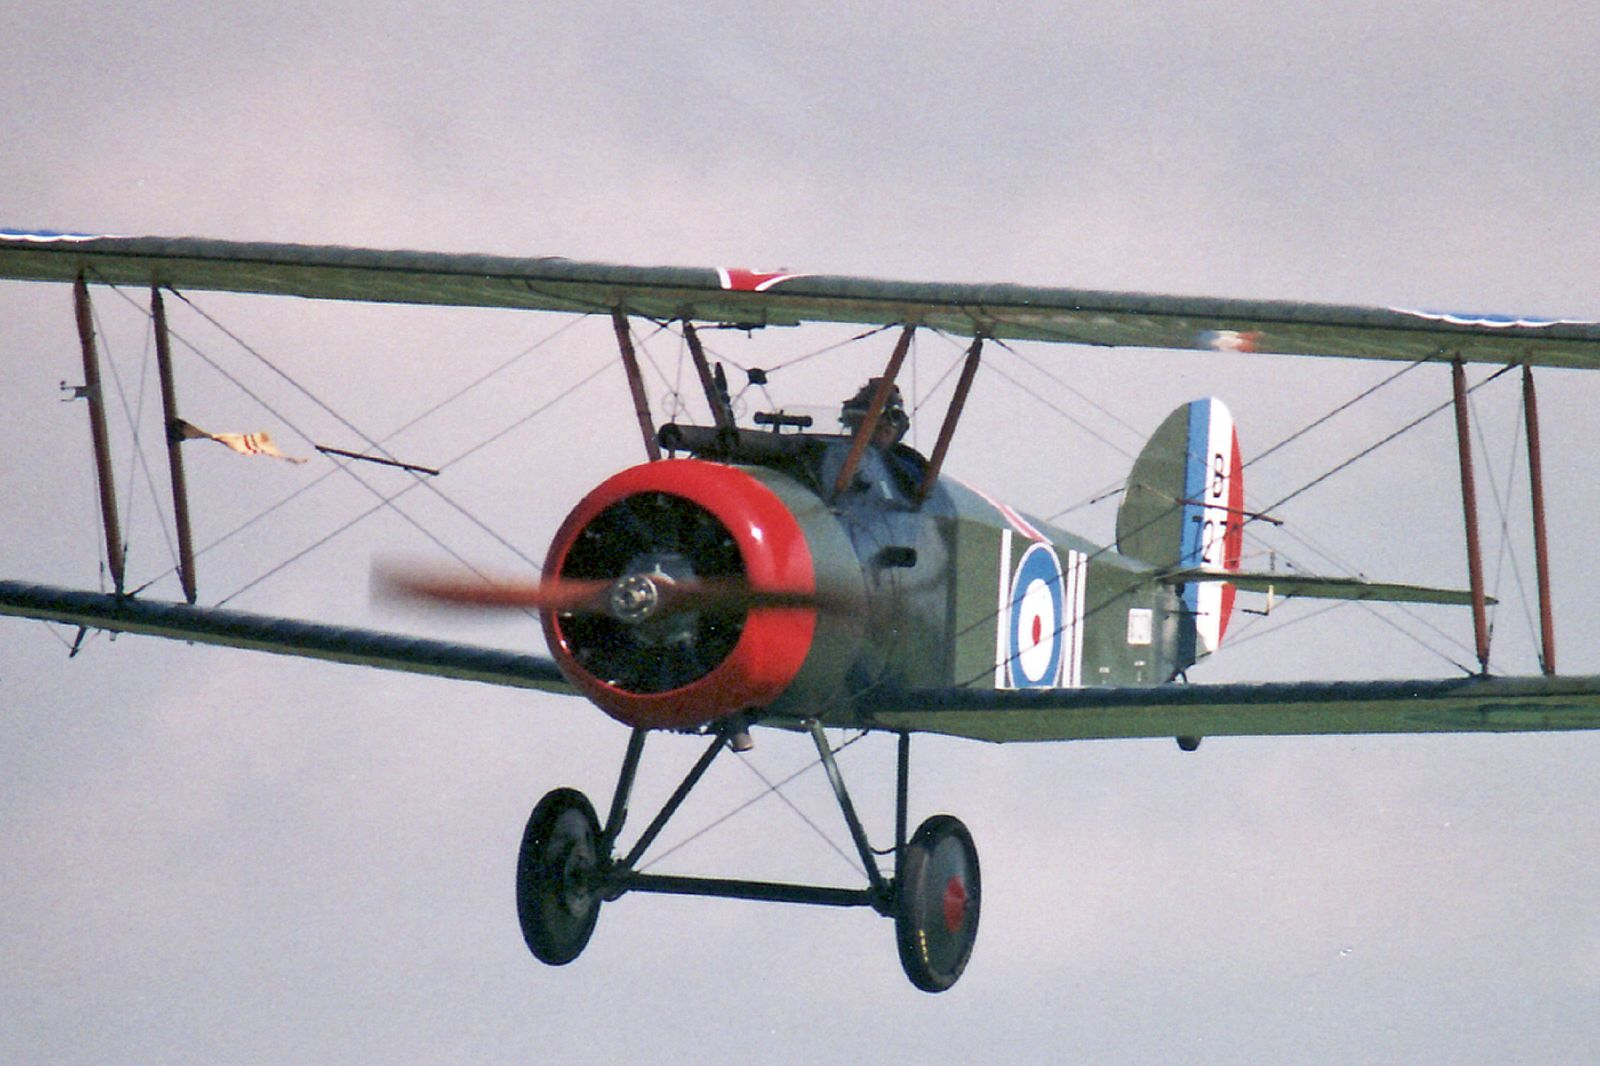 Sopwith Camel - Replica in Flight